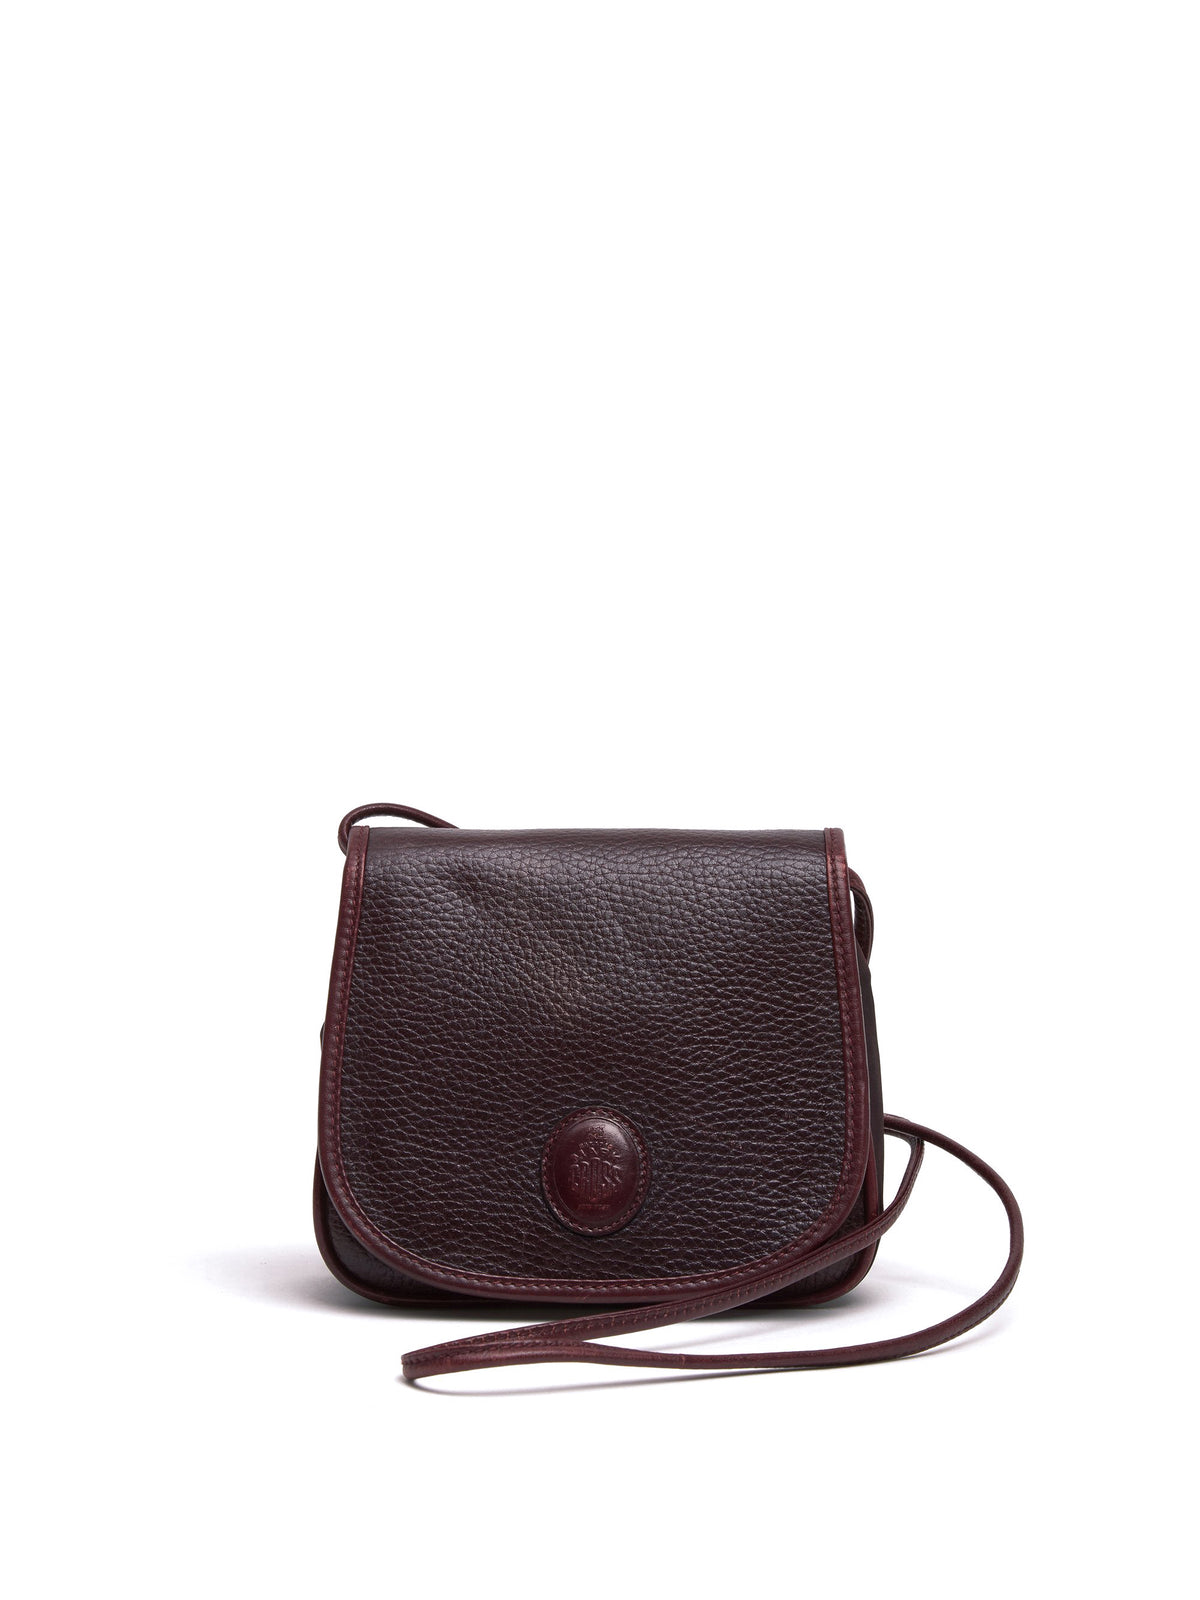 Mark Cross Vintage Mini Leather Crossbody Bag Burgundy Front